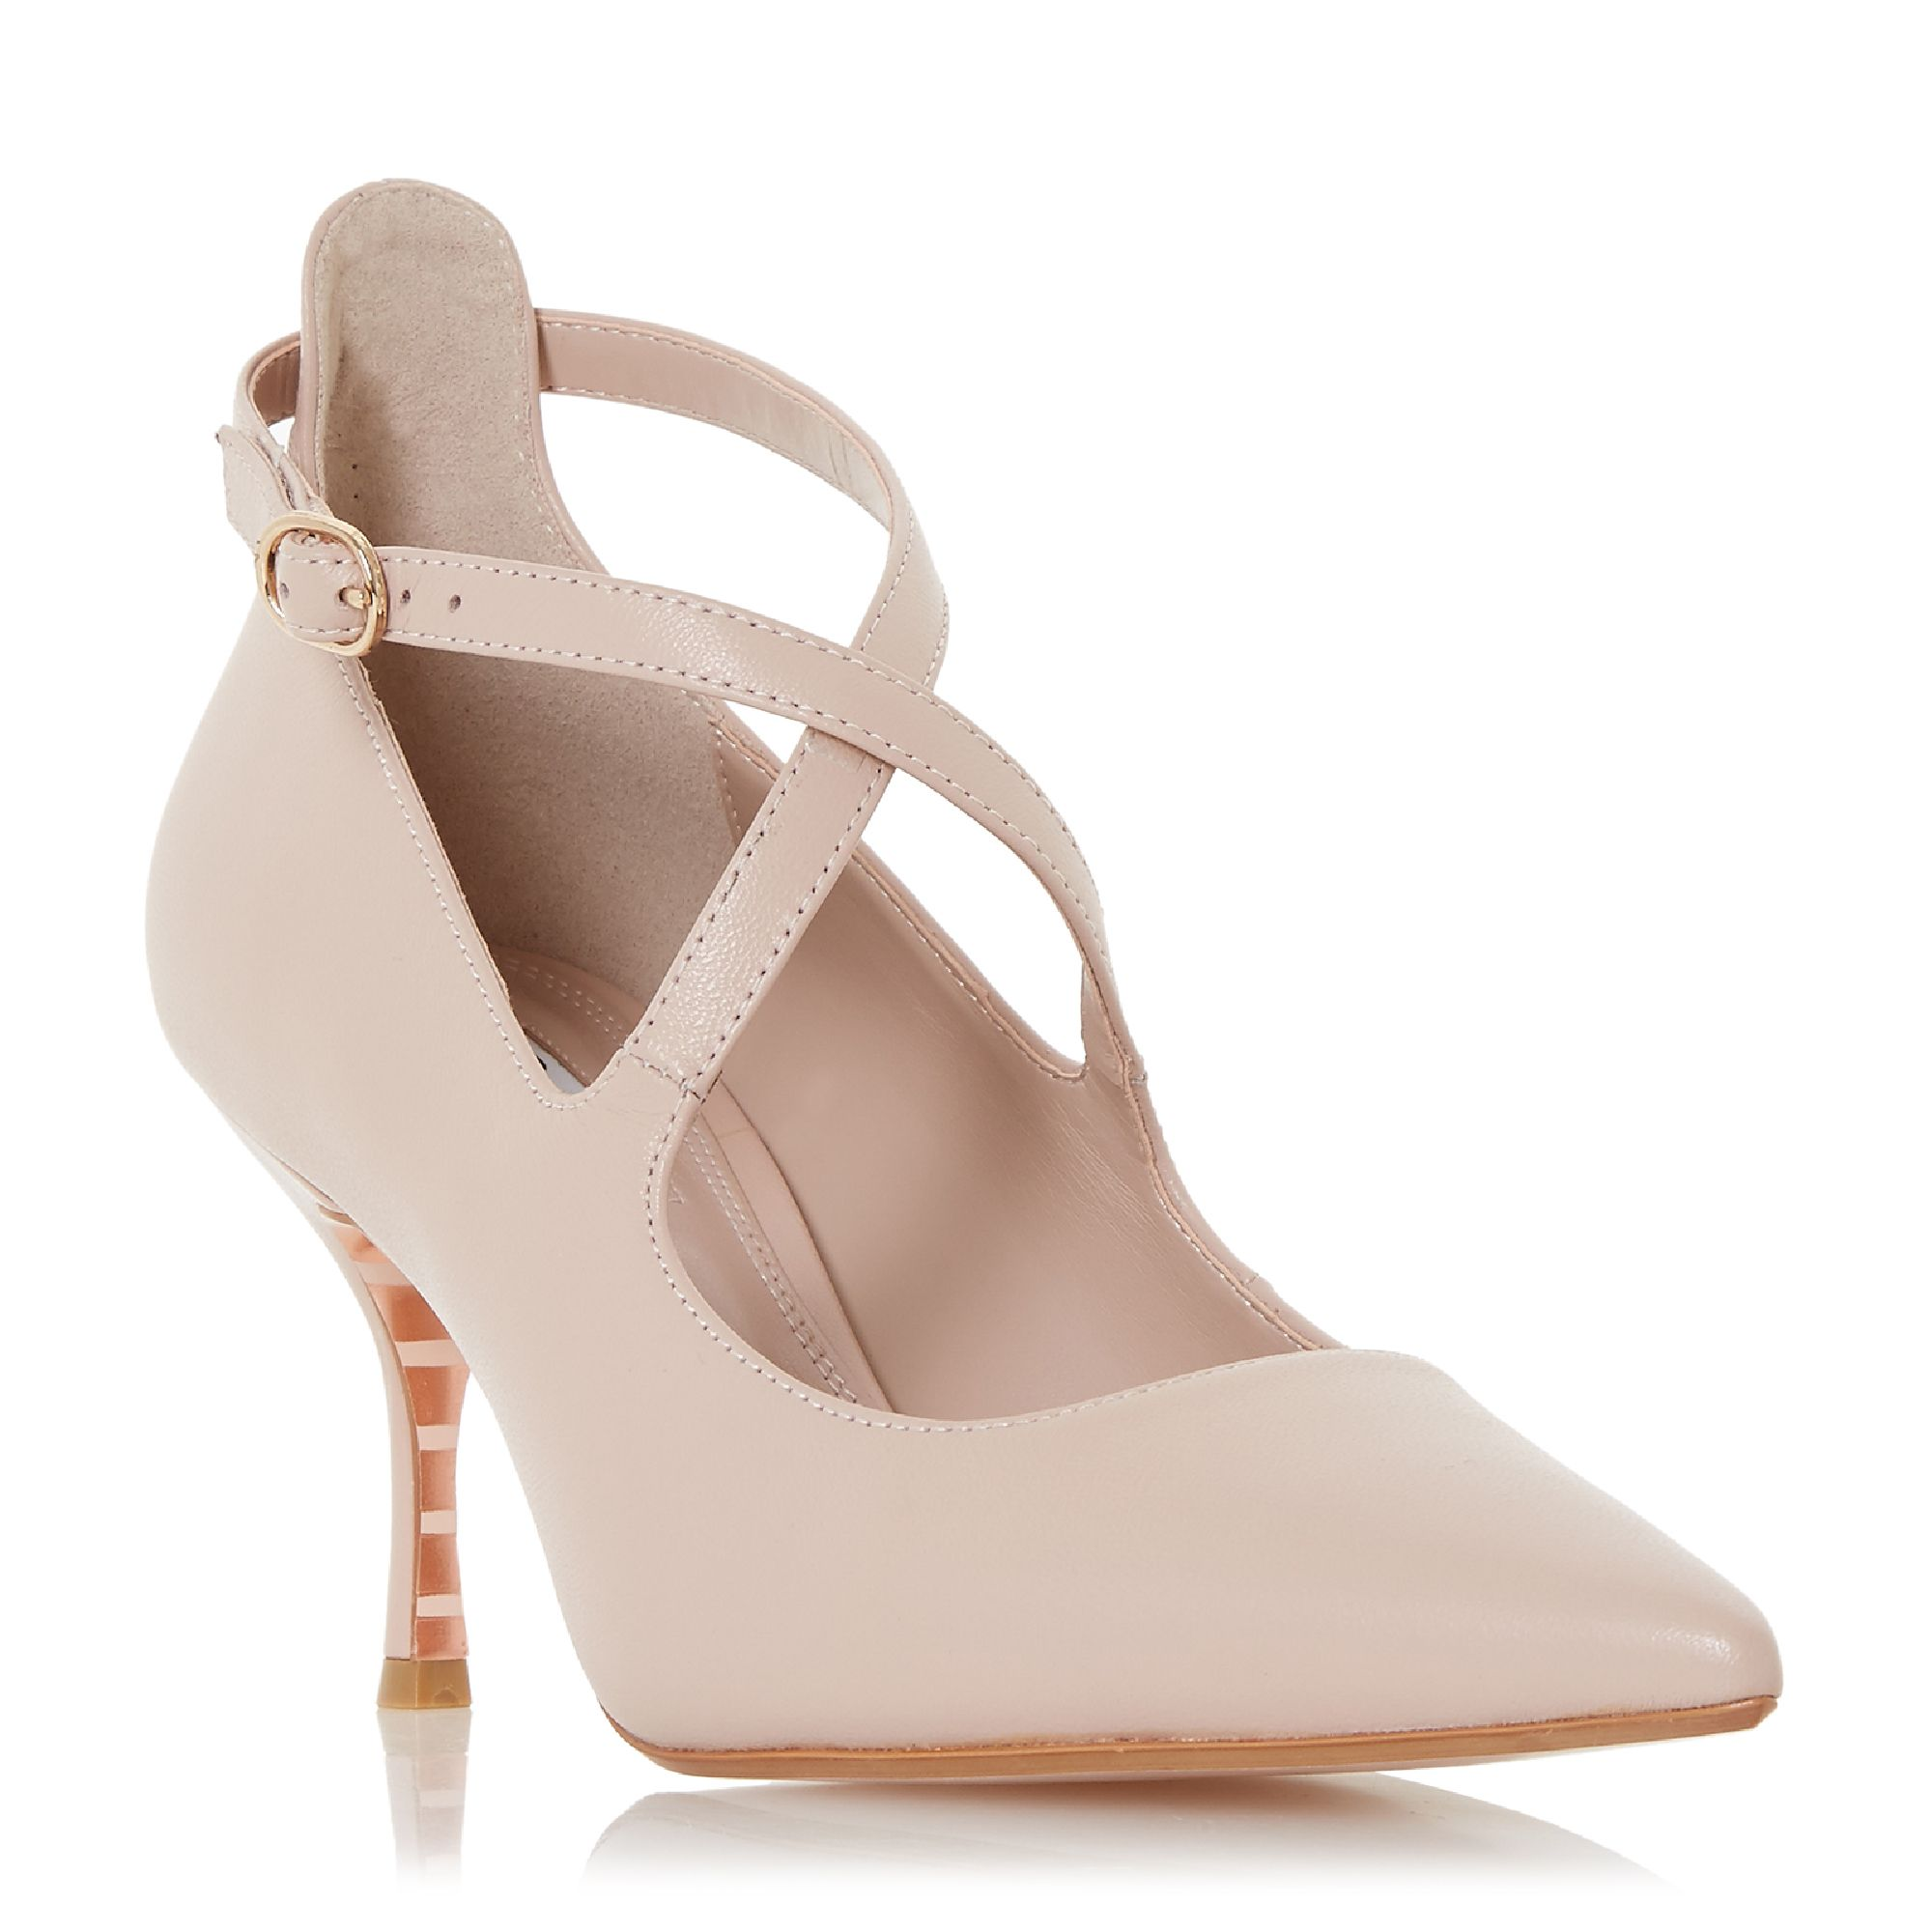 Dune Adline Cross Pointed Toe Court Shoes, Pink